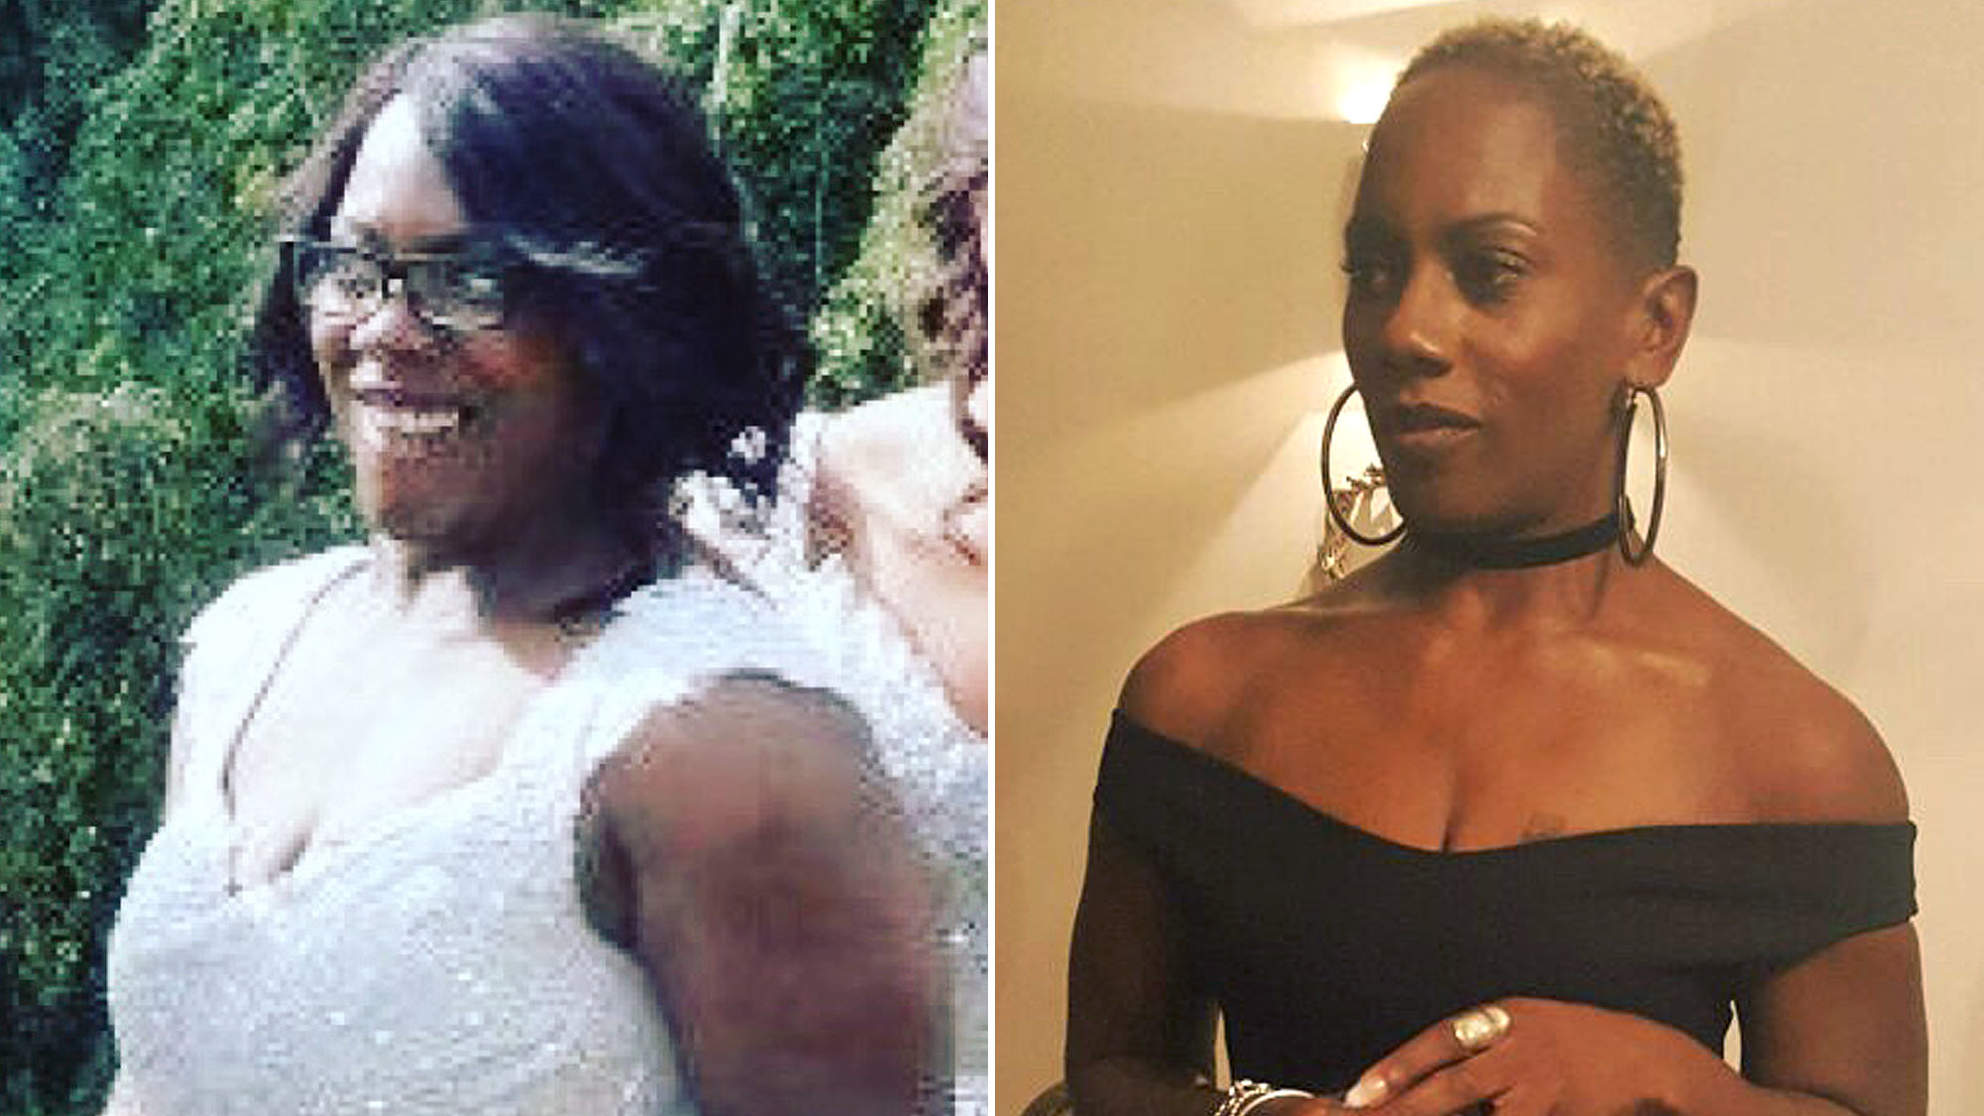 Woman Who Lost 70 Lbs. Says Having a Partner with Parkinson's Inspired Her to Be Her Best Self